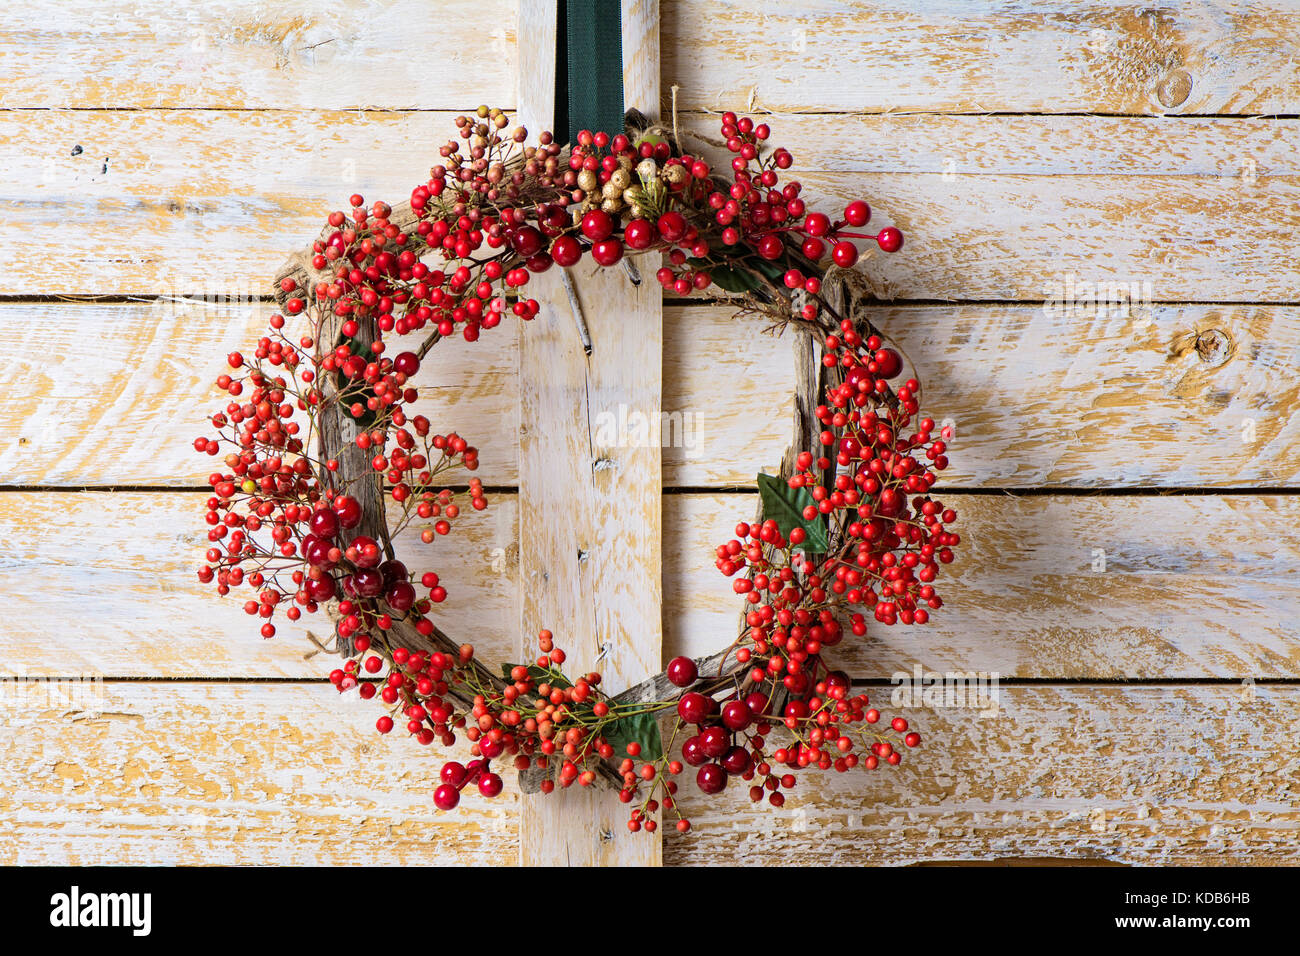 Advent Wreath Wallpaper >> Christmas Wreath Rustic Wood Background Stock Photos & Christmas Wreath Rustic Wood Background ...